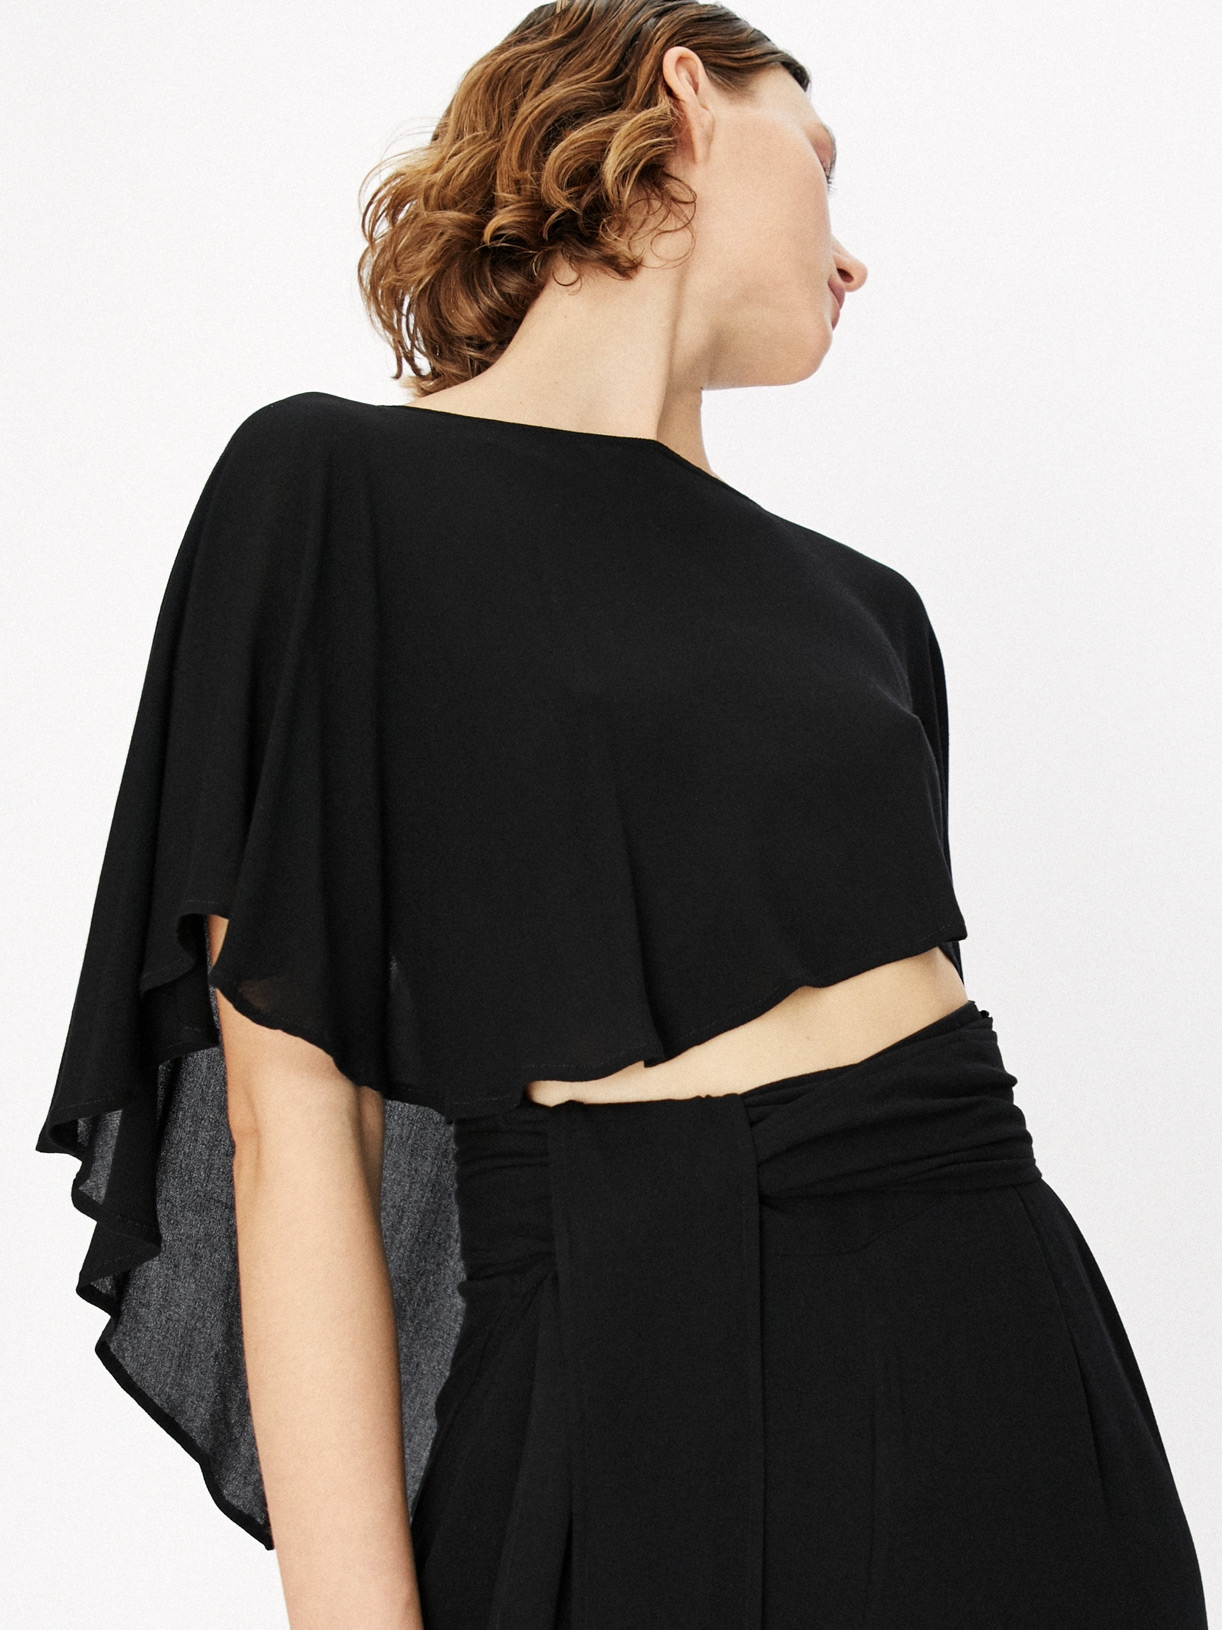 Capucine - Crop top cape